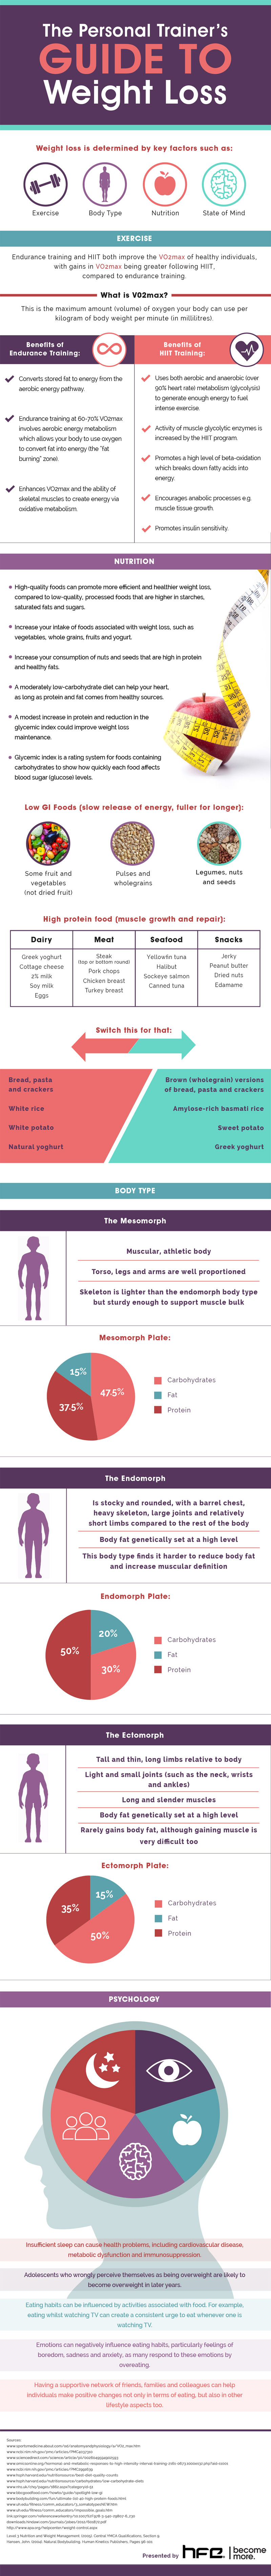 HFE-Weight-Loss-Infographic